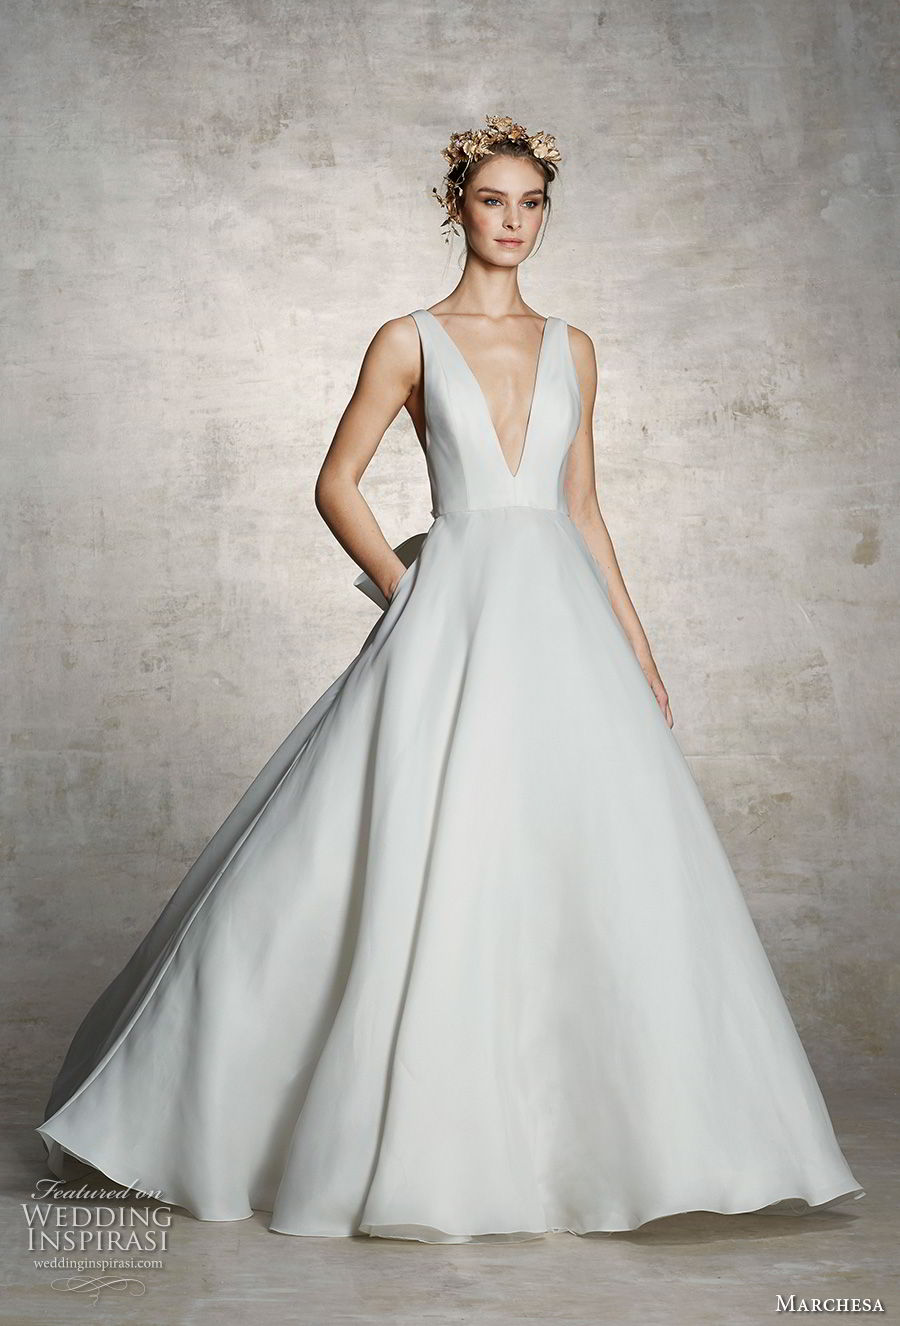 marchesa spring 2019 bridal sleeveless deep v neck simple minimalist elegant classic a line wedding dress with pockets (4) mv